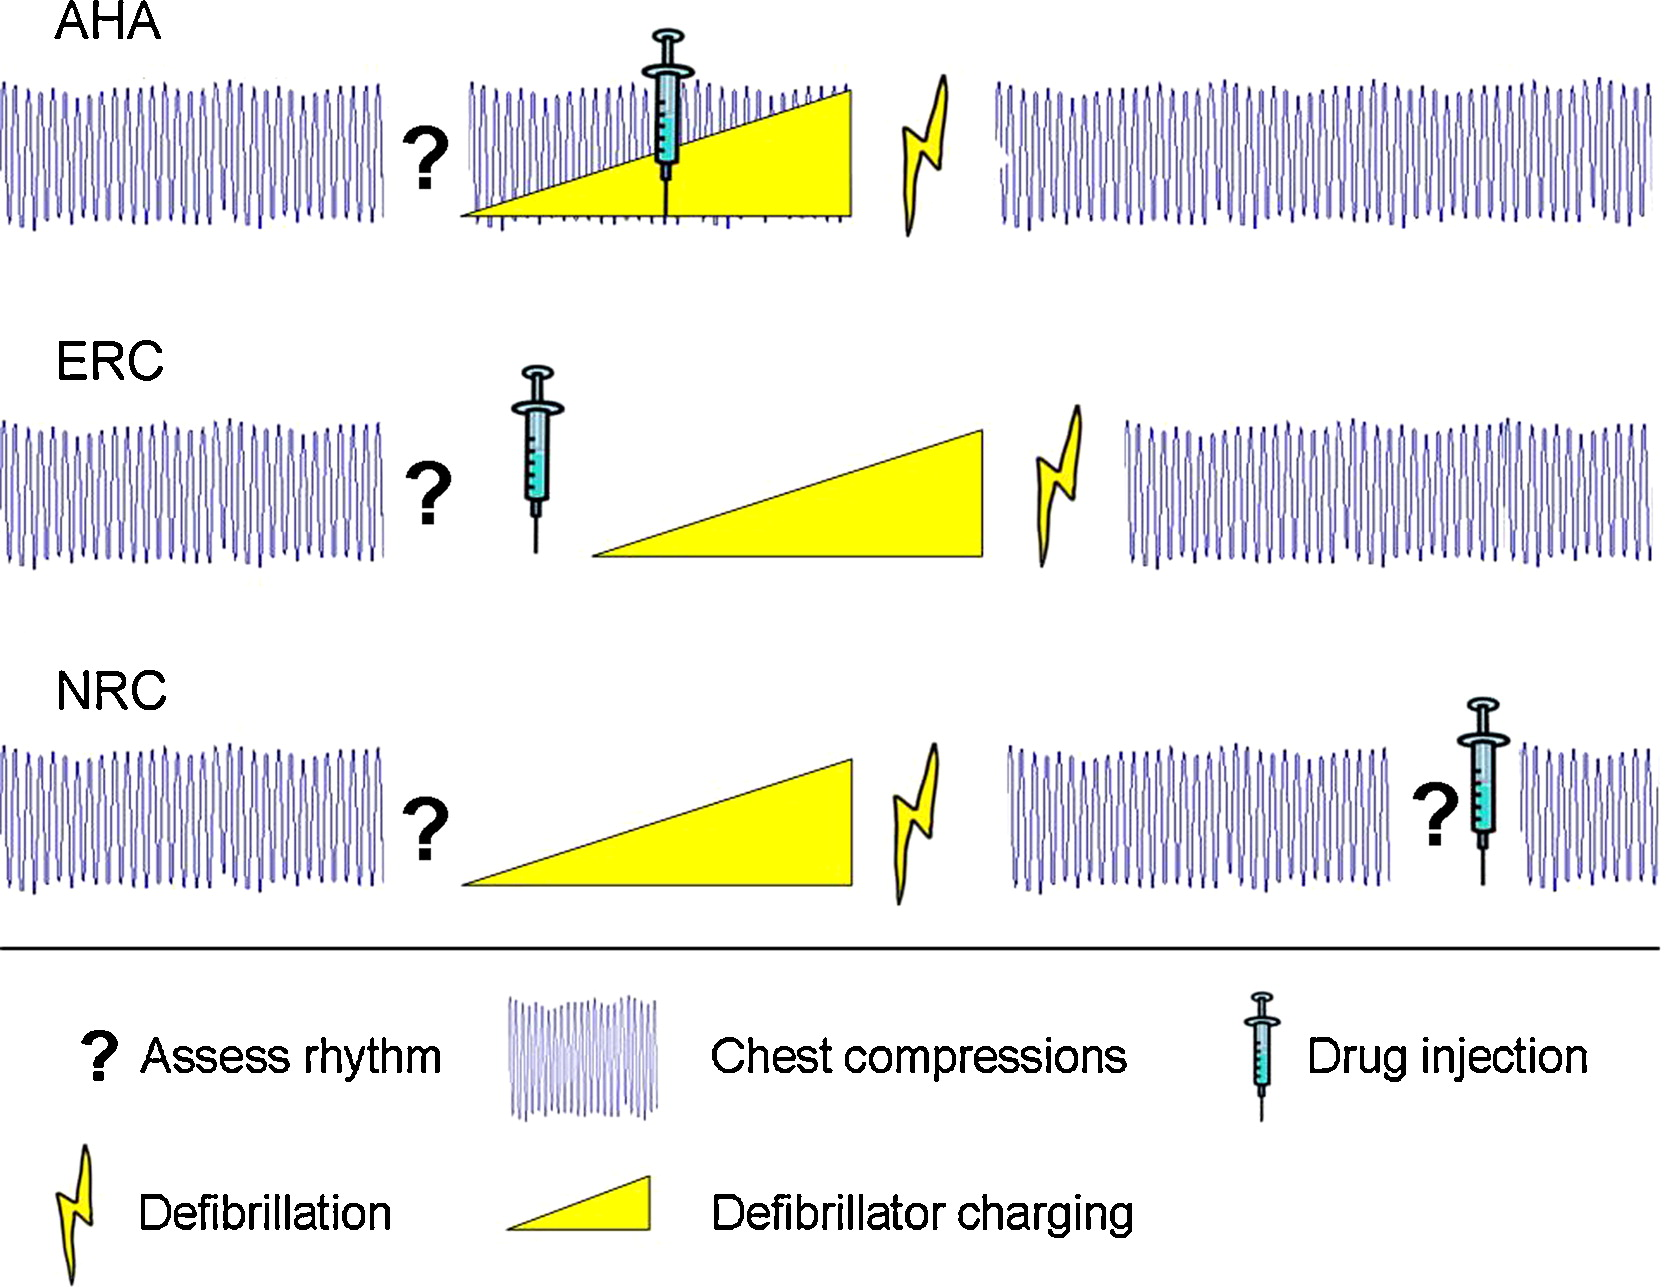 medical simulation drug study Physiologically-based pharmacokinetic models integrate drug (substance) and system (physiology) information into a mathematical modeling framework.